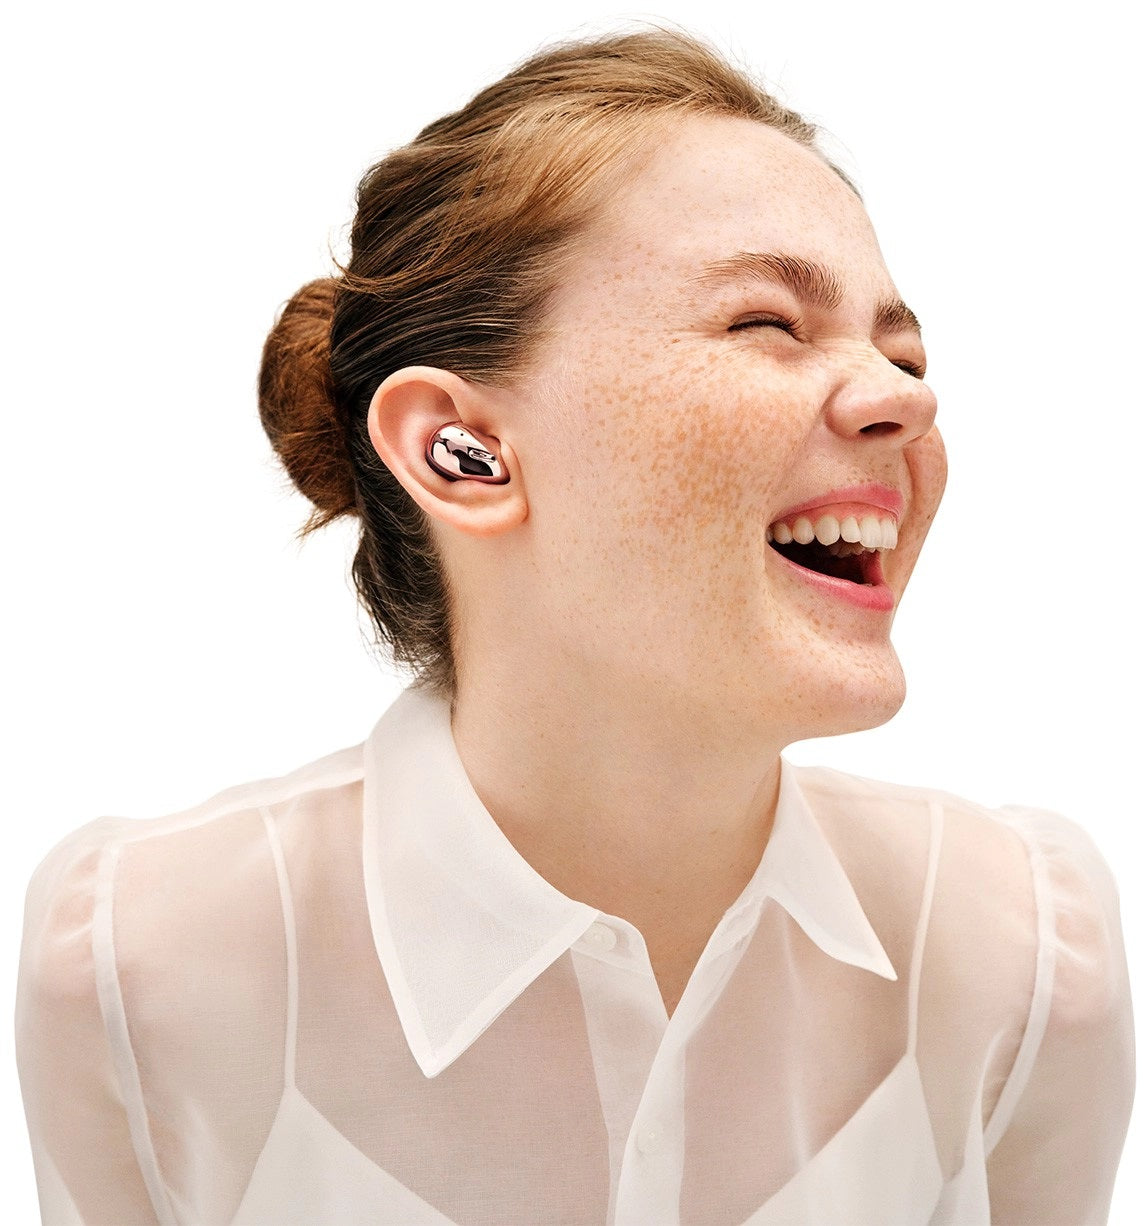 Introducing Galaxy Buds Live  - Earbuds designed to tune in to every moment. With an iconic shape and ergonomic design, the adaptive fit lets in desired sounds from your natural surroundings, and a dynamic speaker system optimised for a better experience. This is sound made just for your ears.